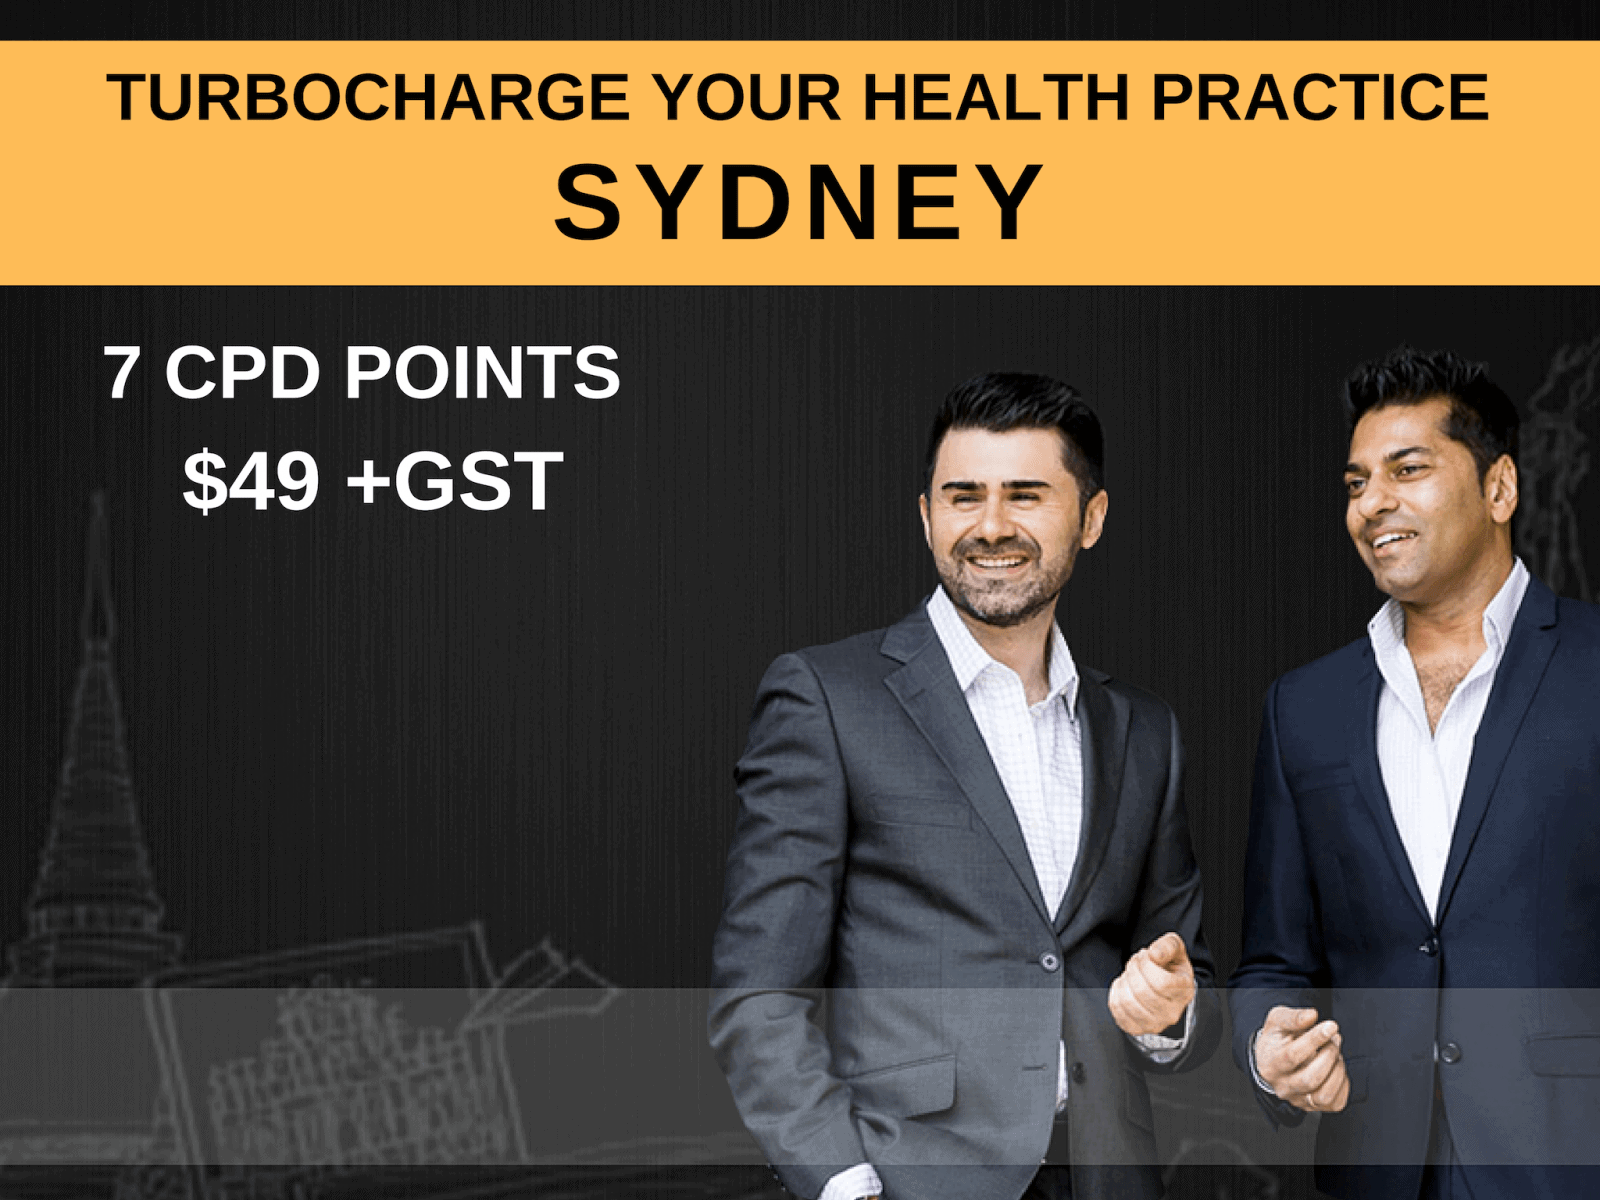 Turbocharge Your Health Practice - SYD